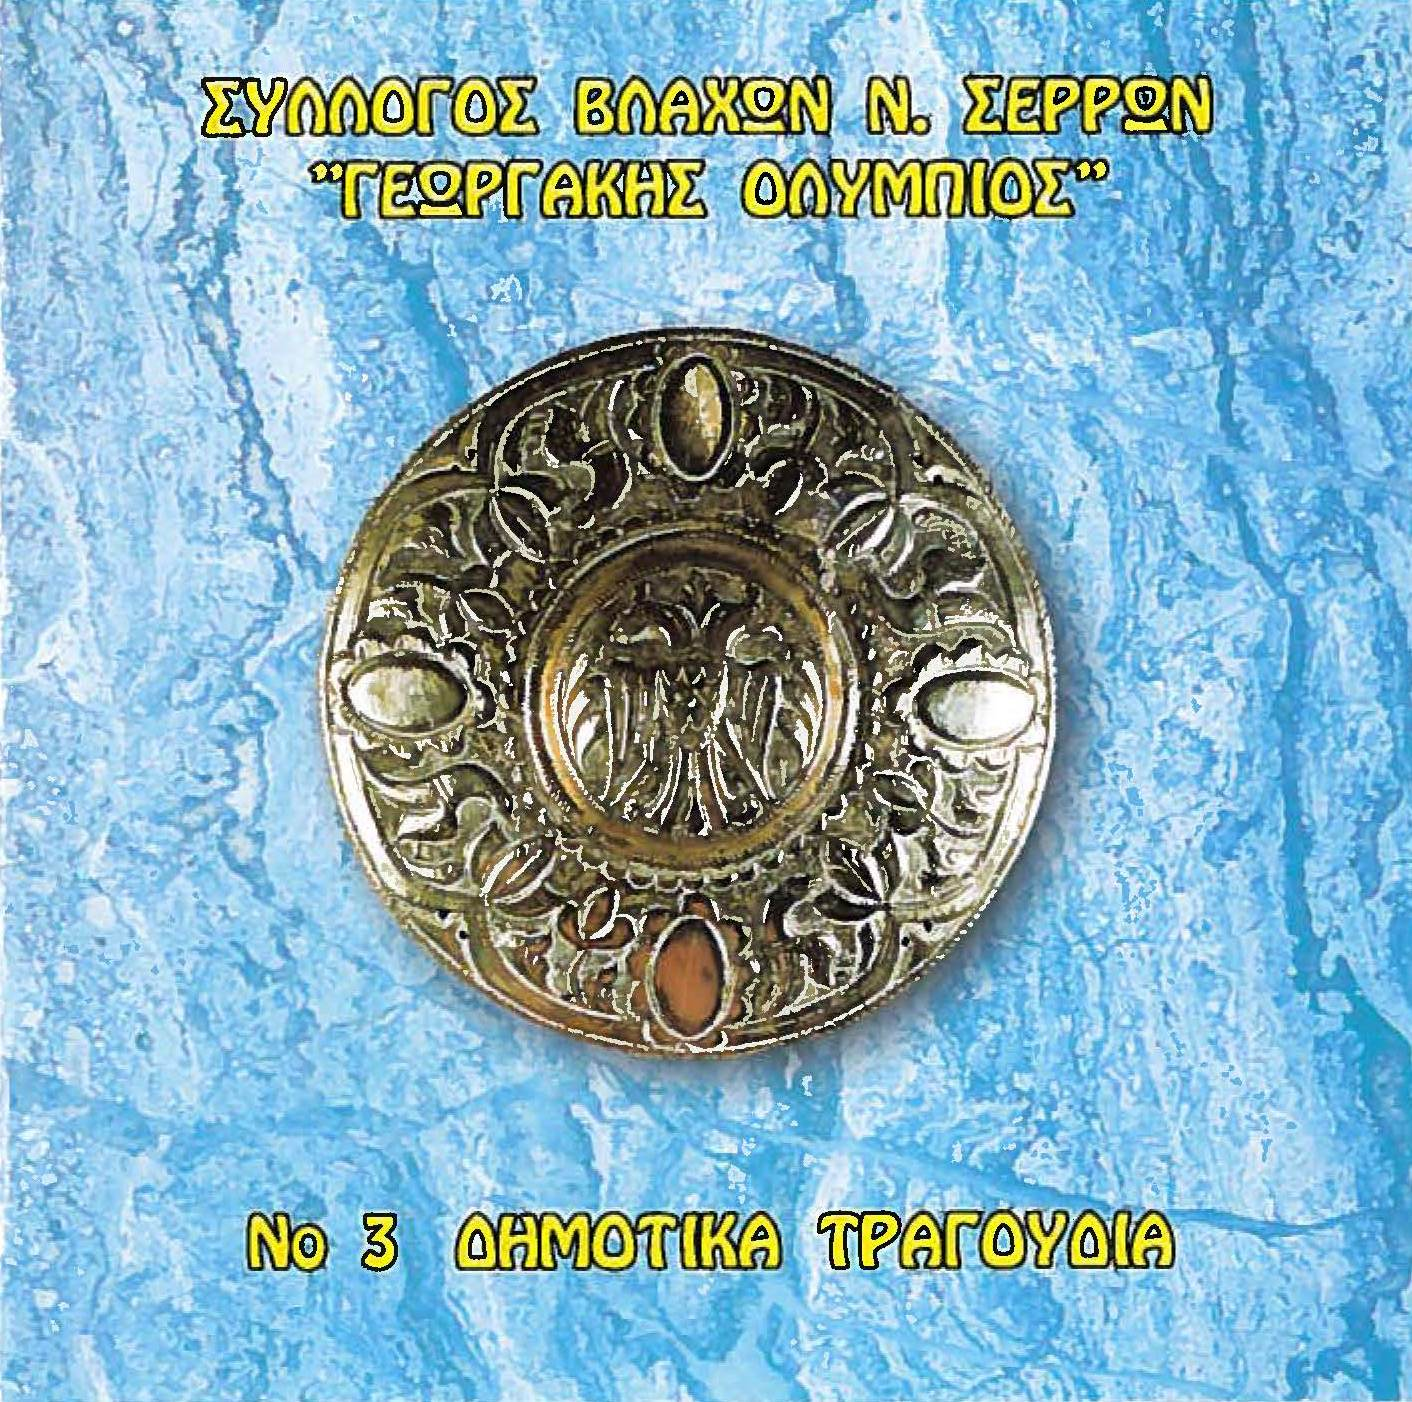 ASSOCIATION OF VLACXHS PREF. OF SERRES GEORGAKIS OLYMPIOS NO3